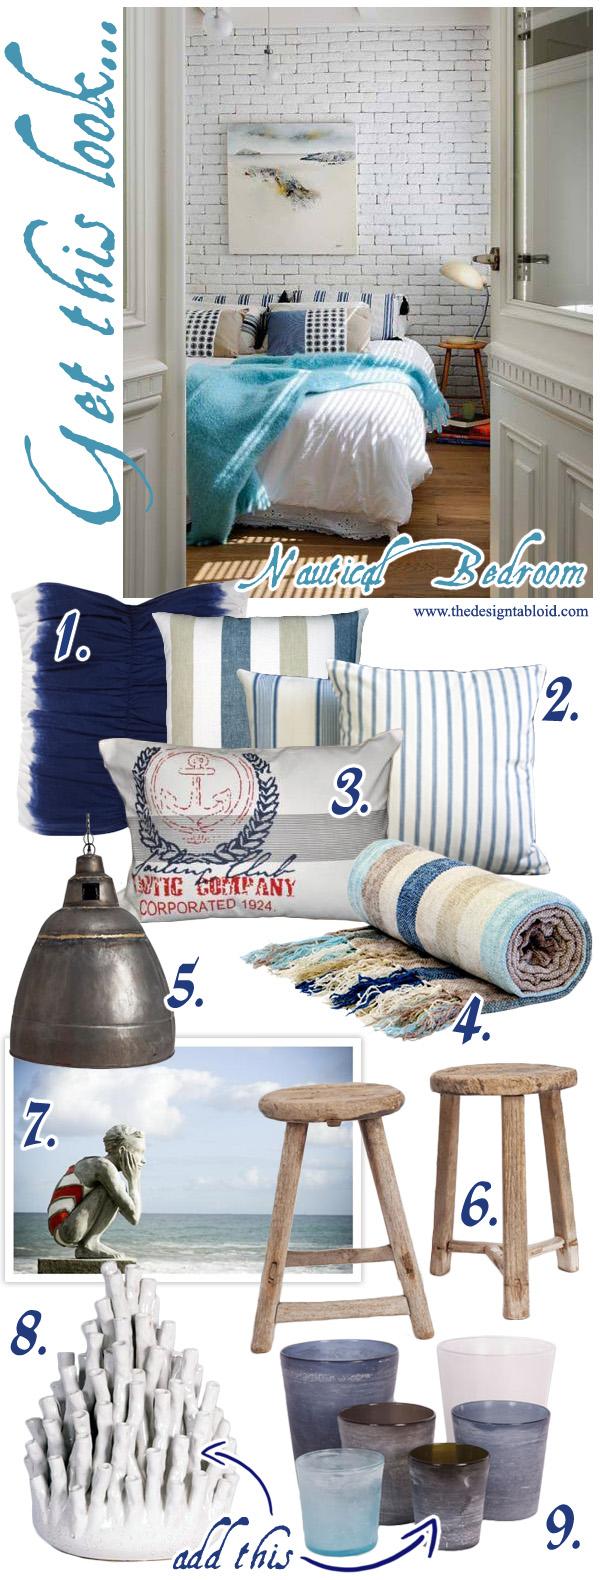 Nautical Themed Bedroom Decor: Get This Look: Nautical Bedroom